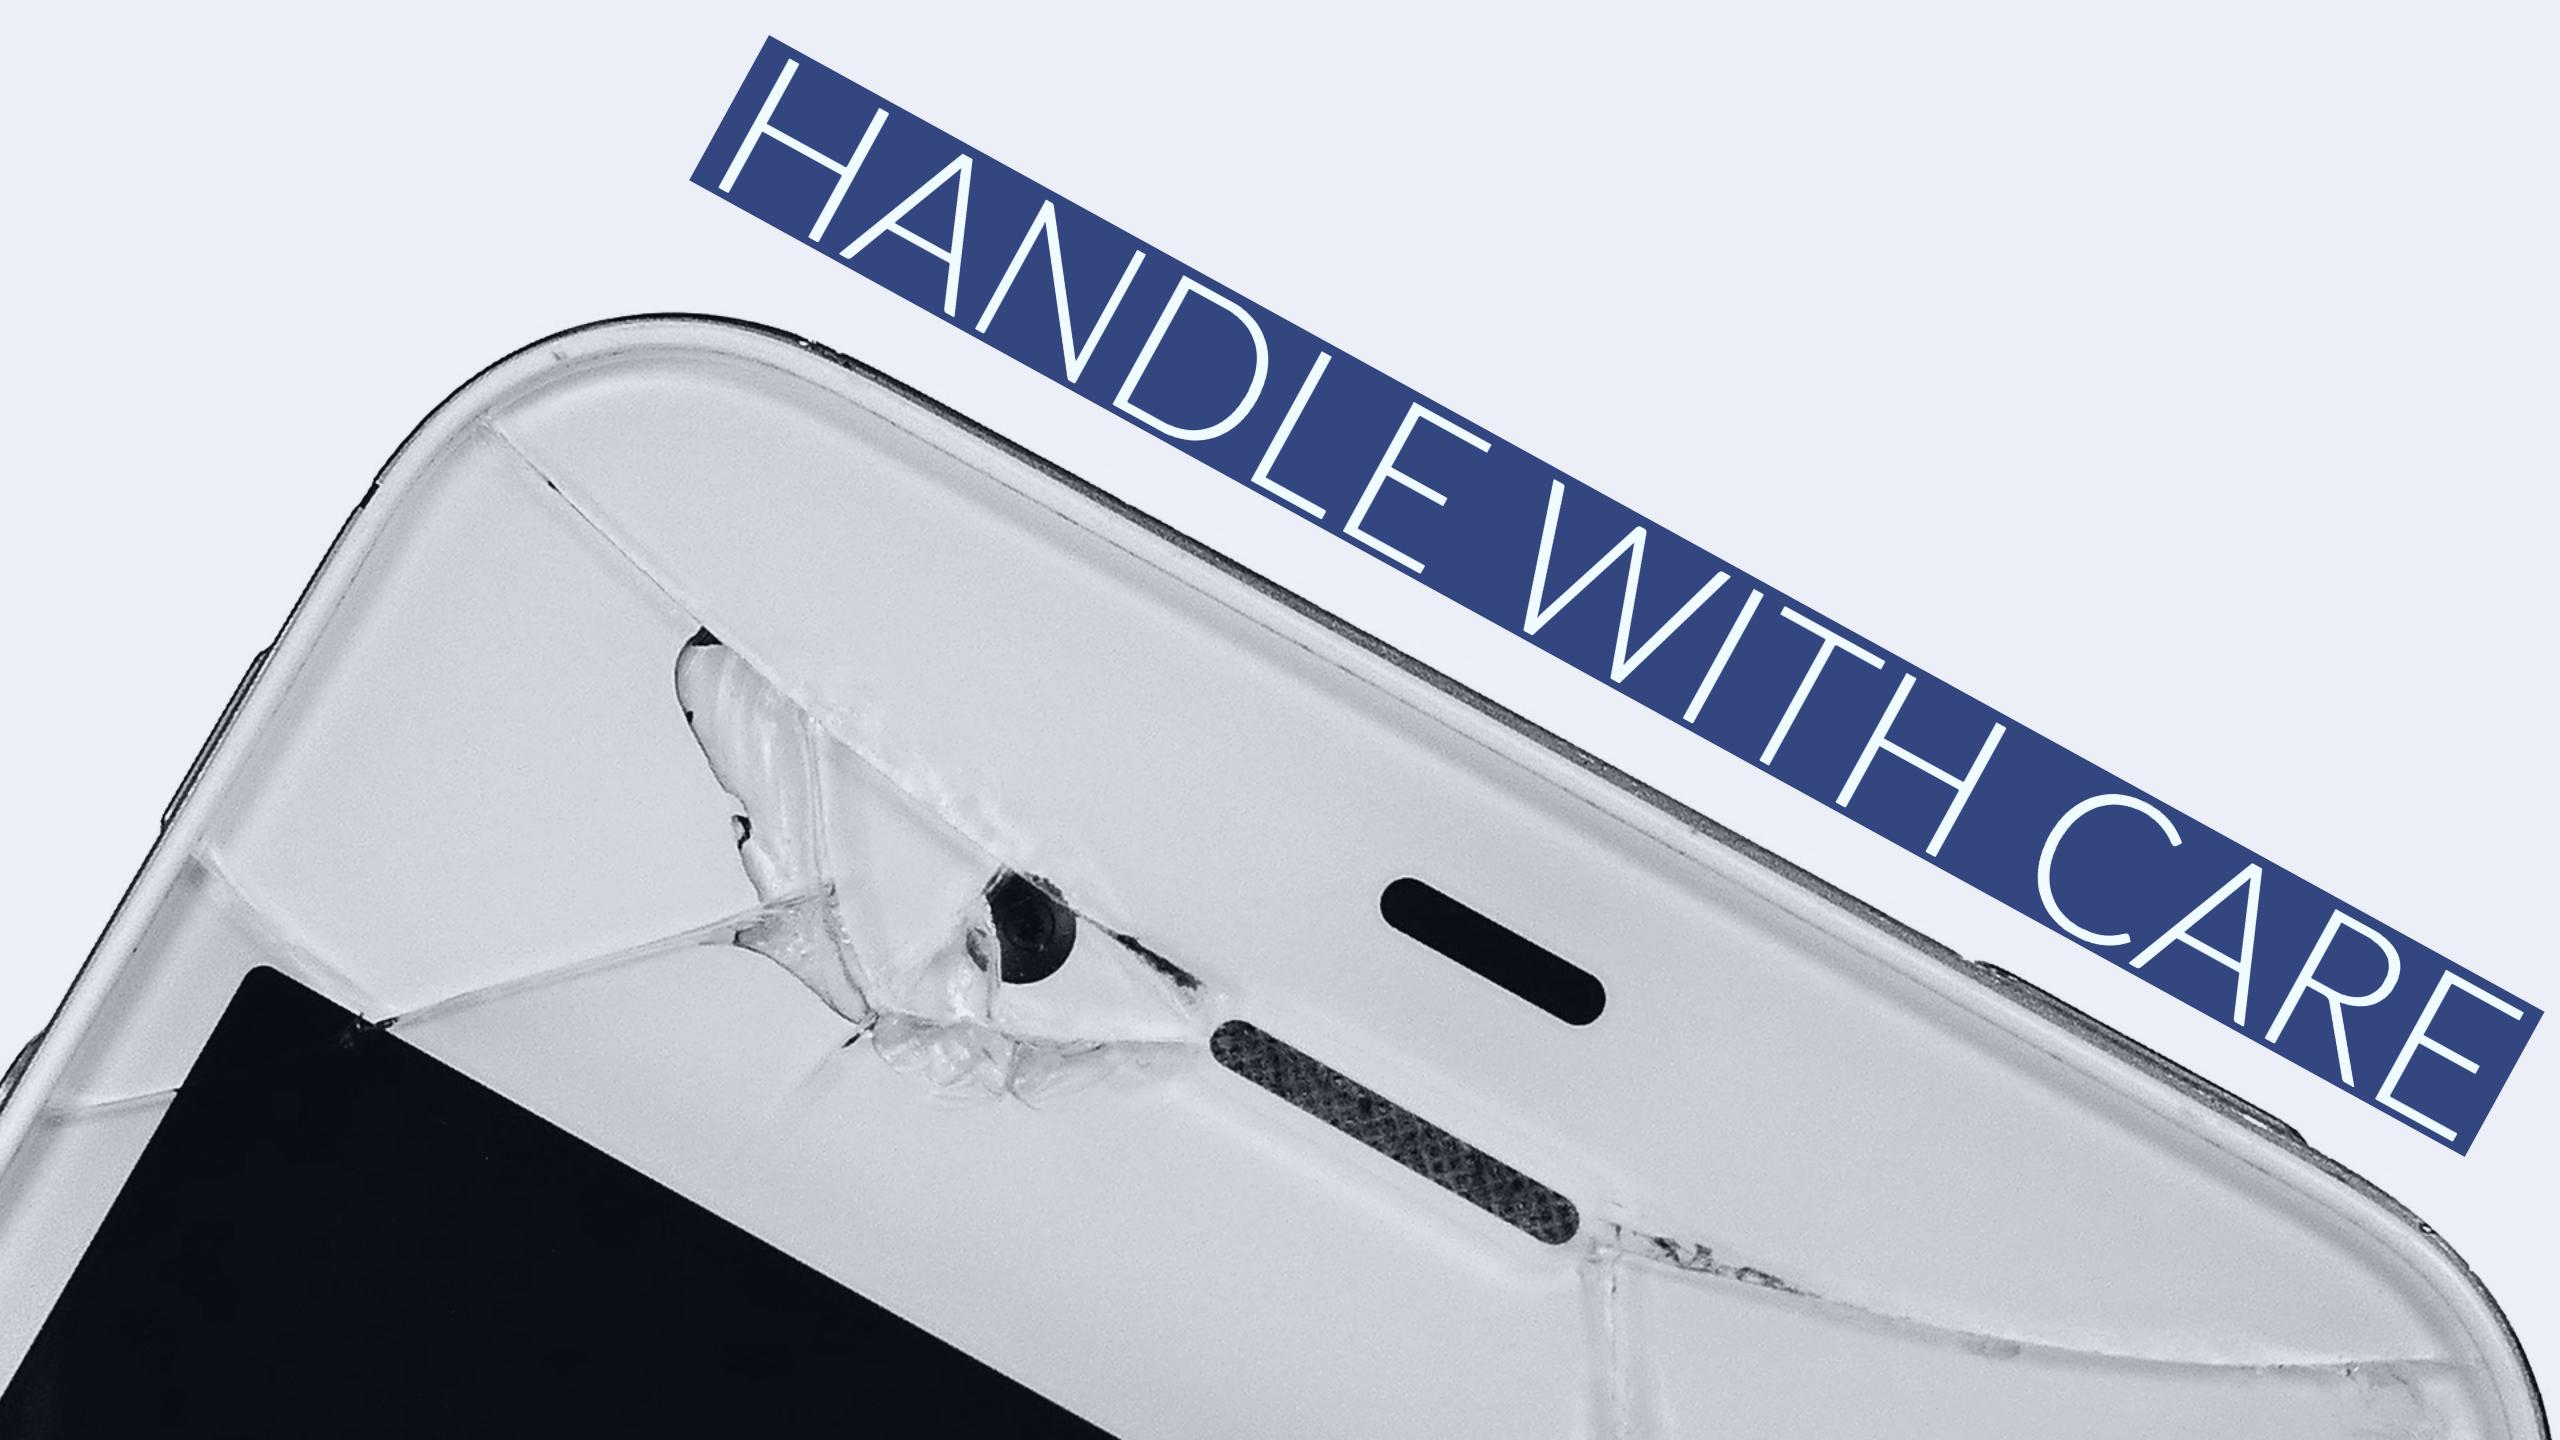 Handle devices with care